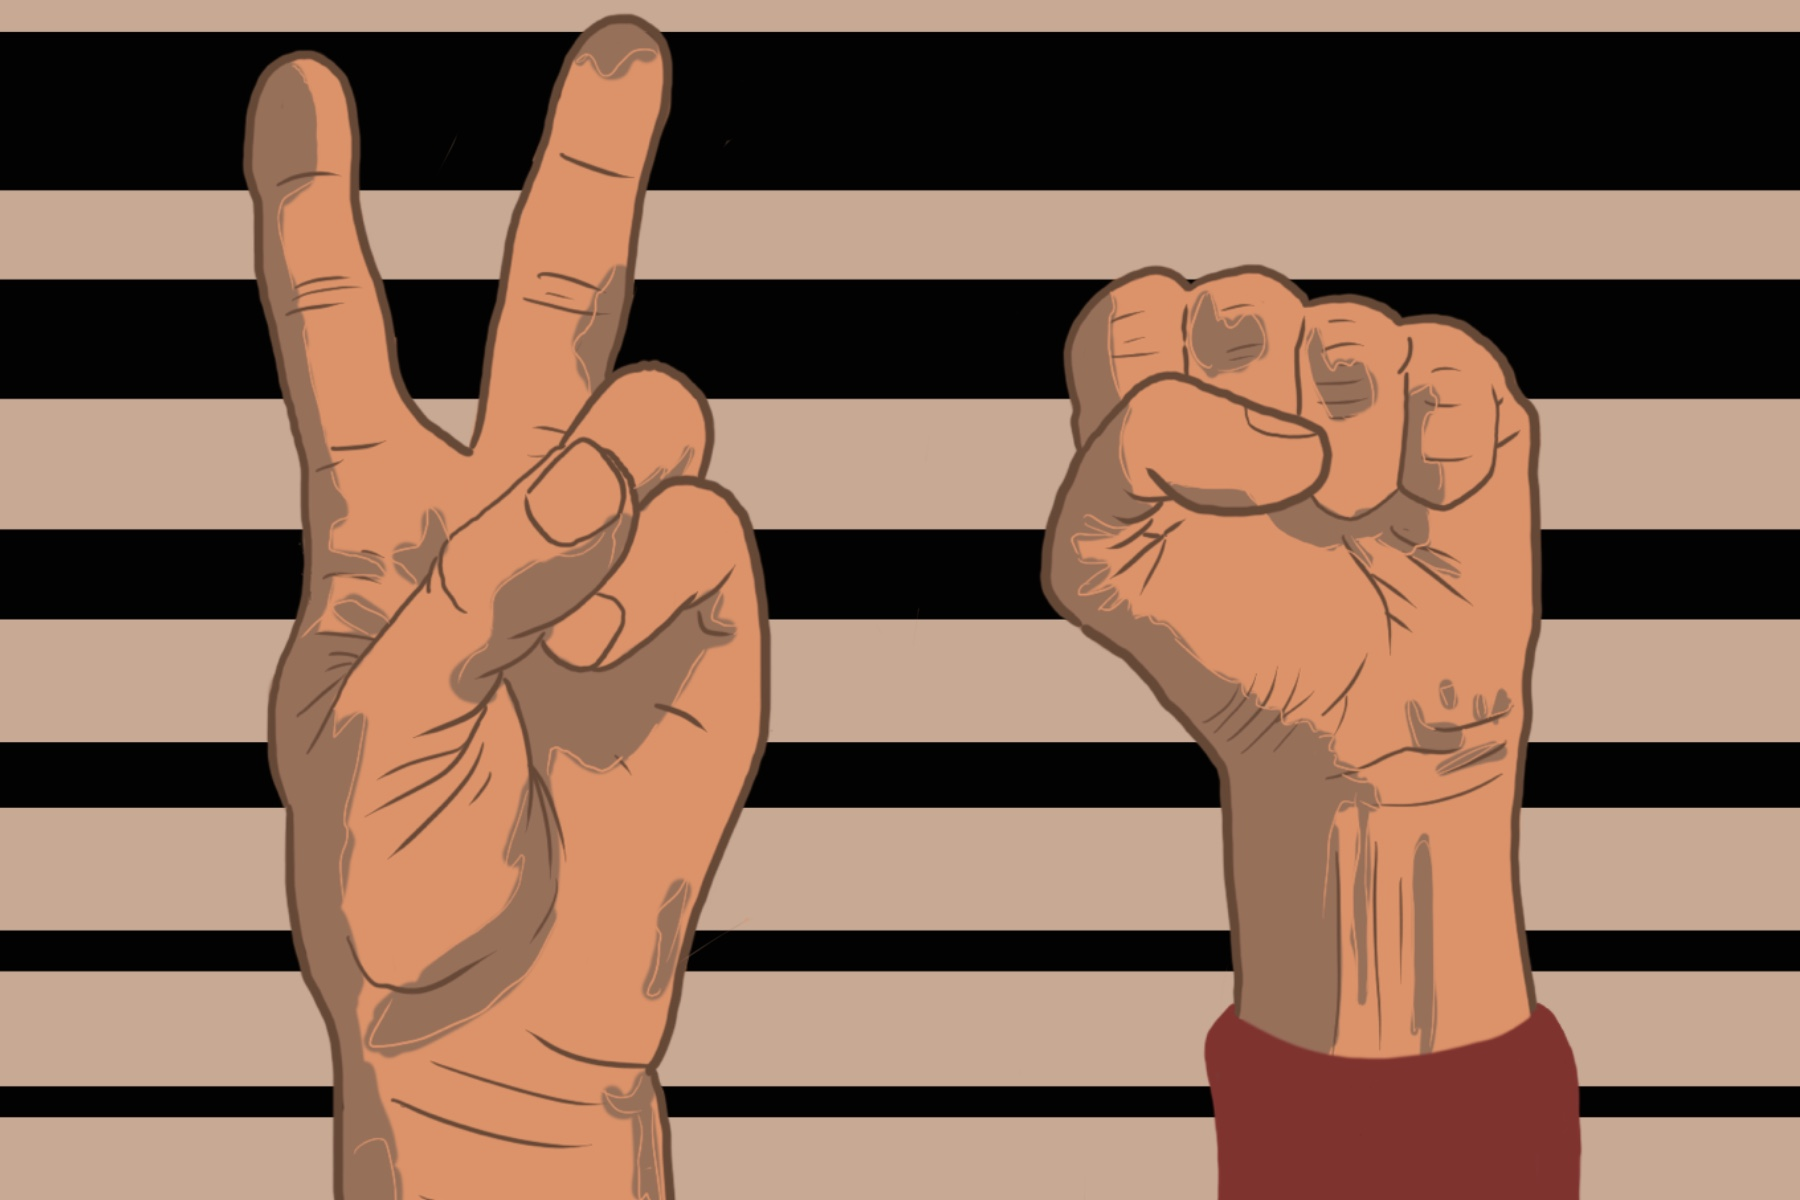 In an article about the show The Boondocks, an illustration of a raised fist and a hand doing a peace sign